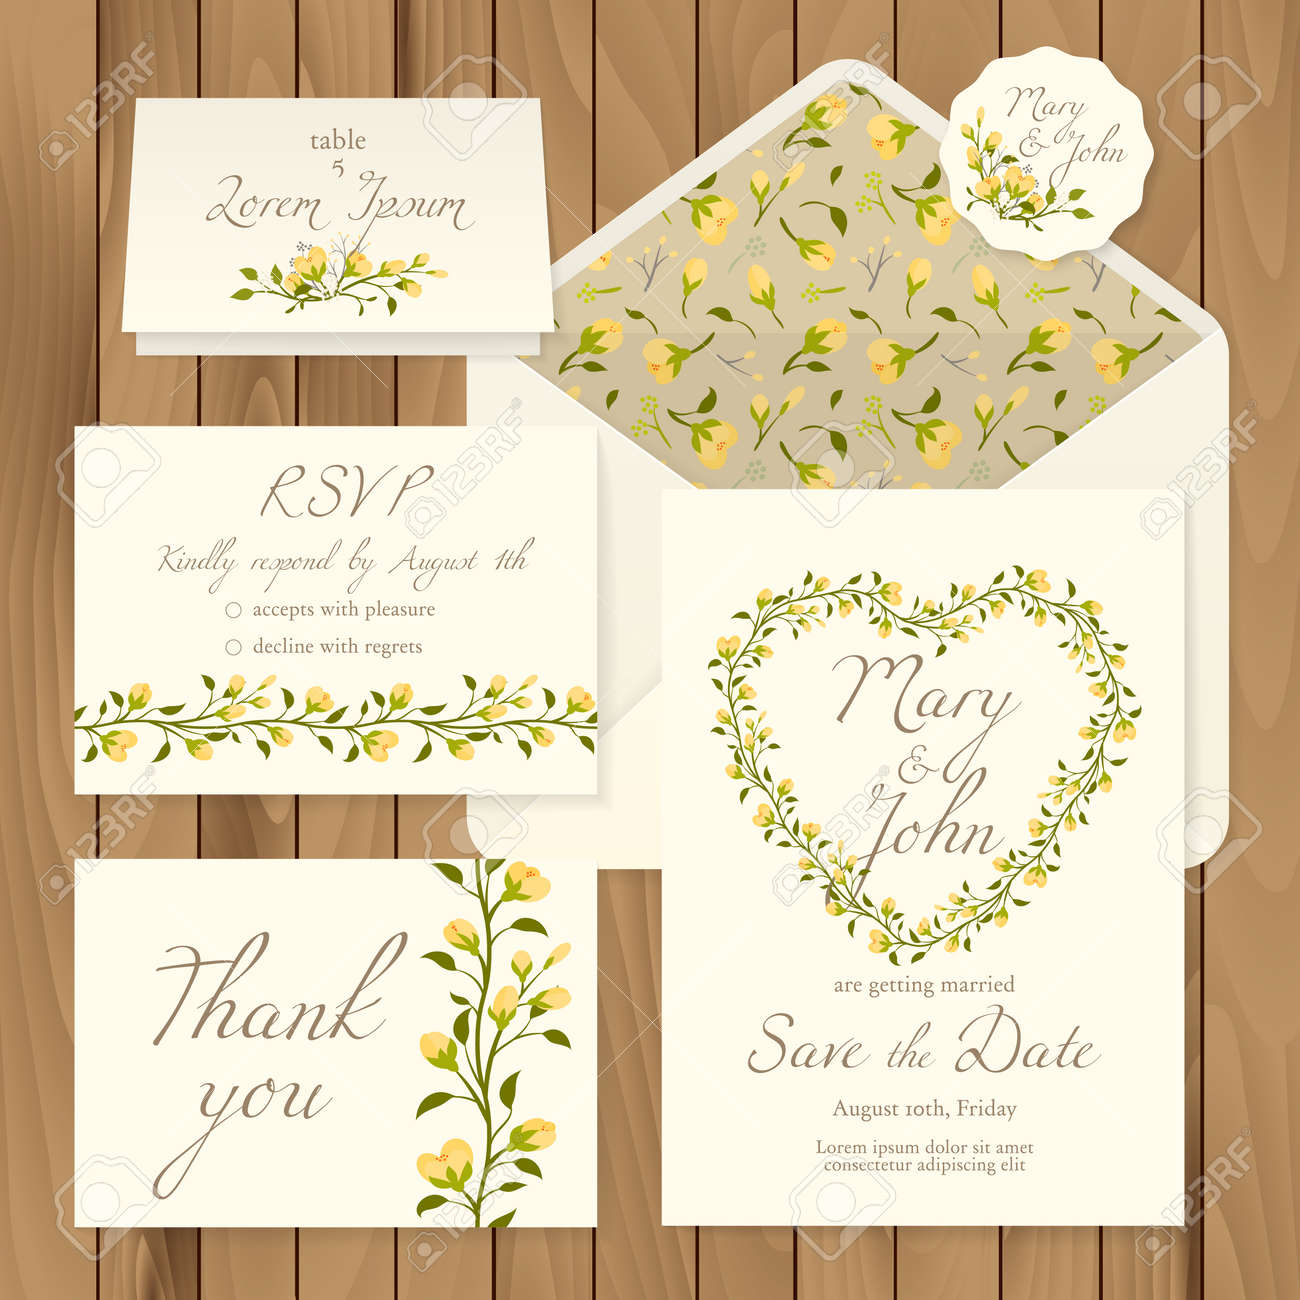 vector vector set of vintage floral wedding invitation templates card response save the date thank you table number label and envelope pattern